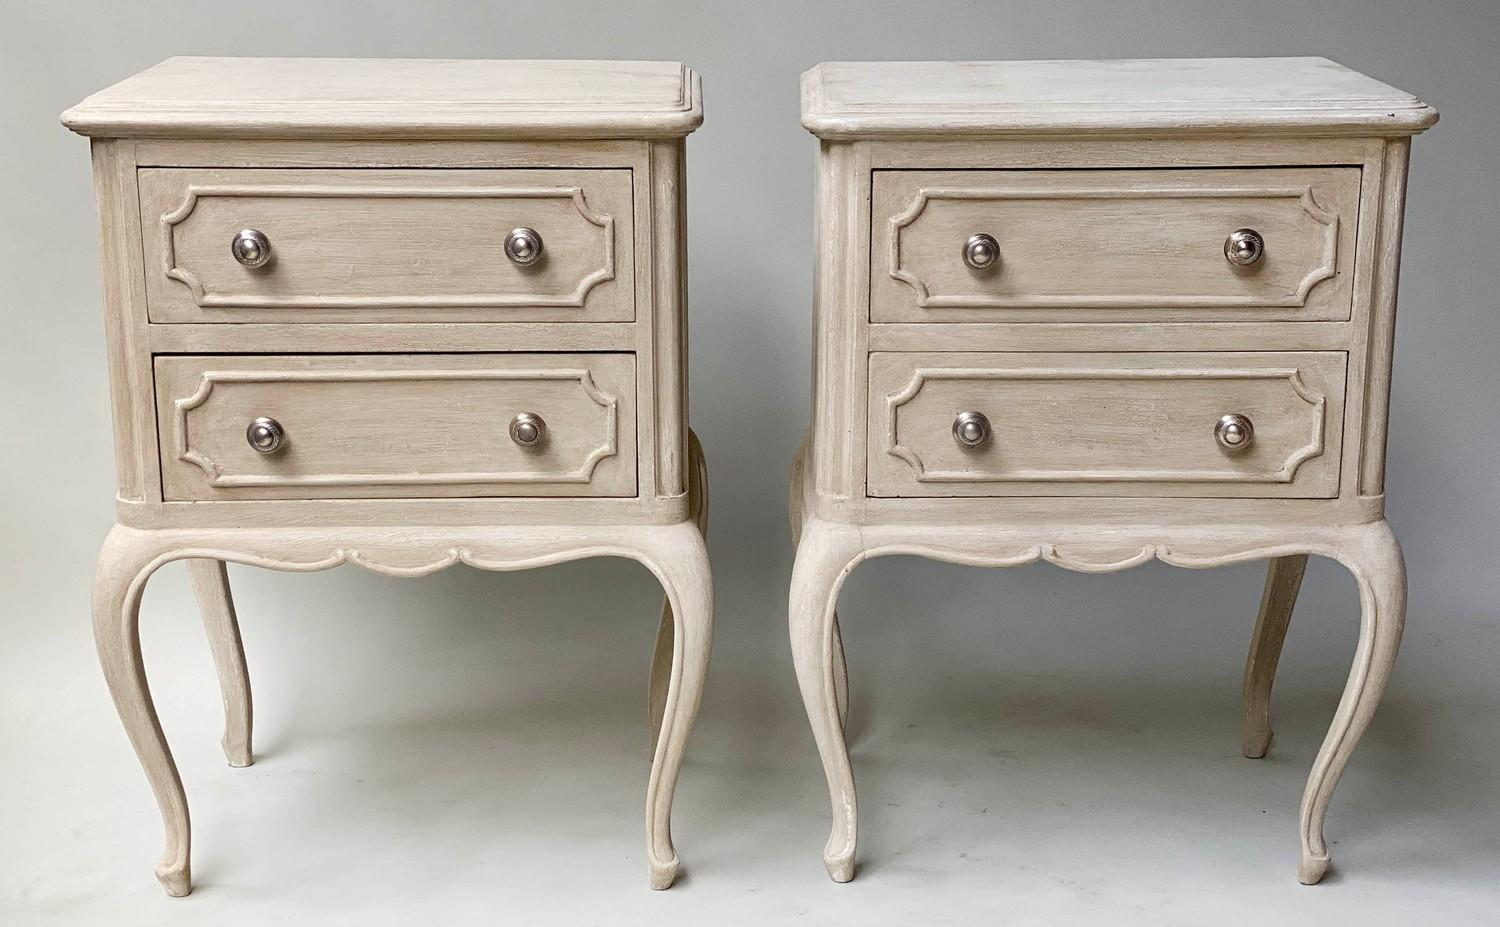 BEDSIDE CHESTS, a pair, French Louis XV design grey painted each with two drawers, 48cm x 36cm x - Image 4 of 5